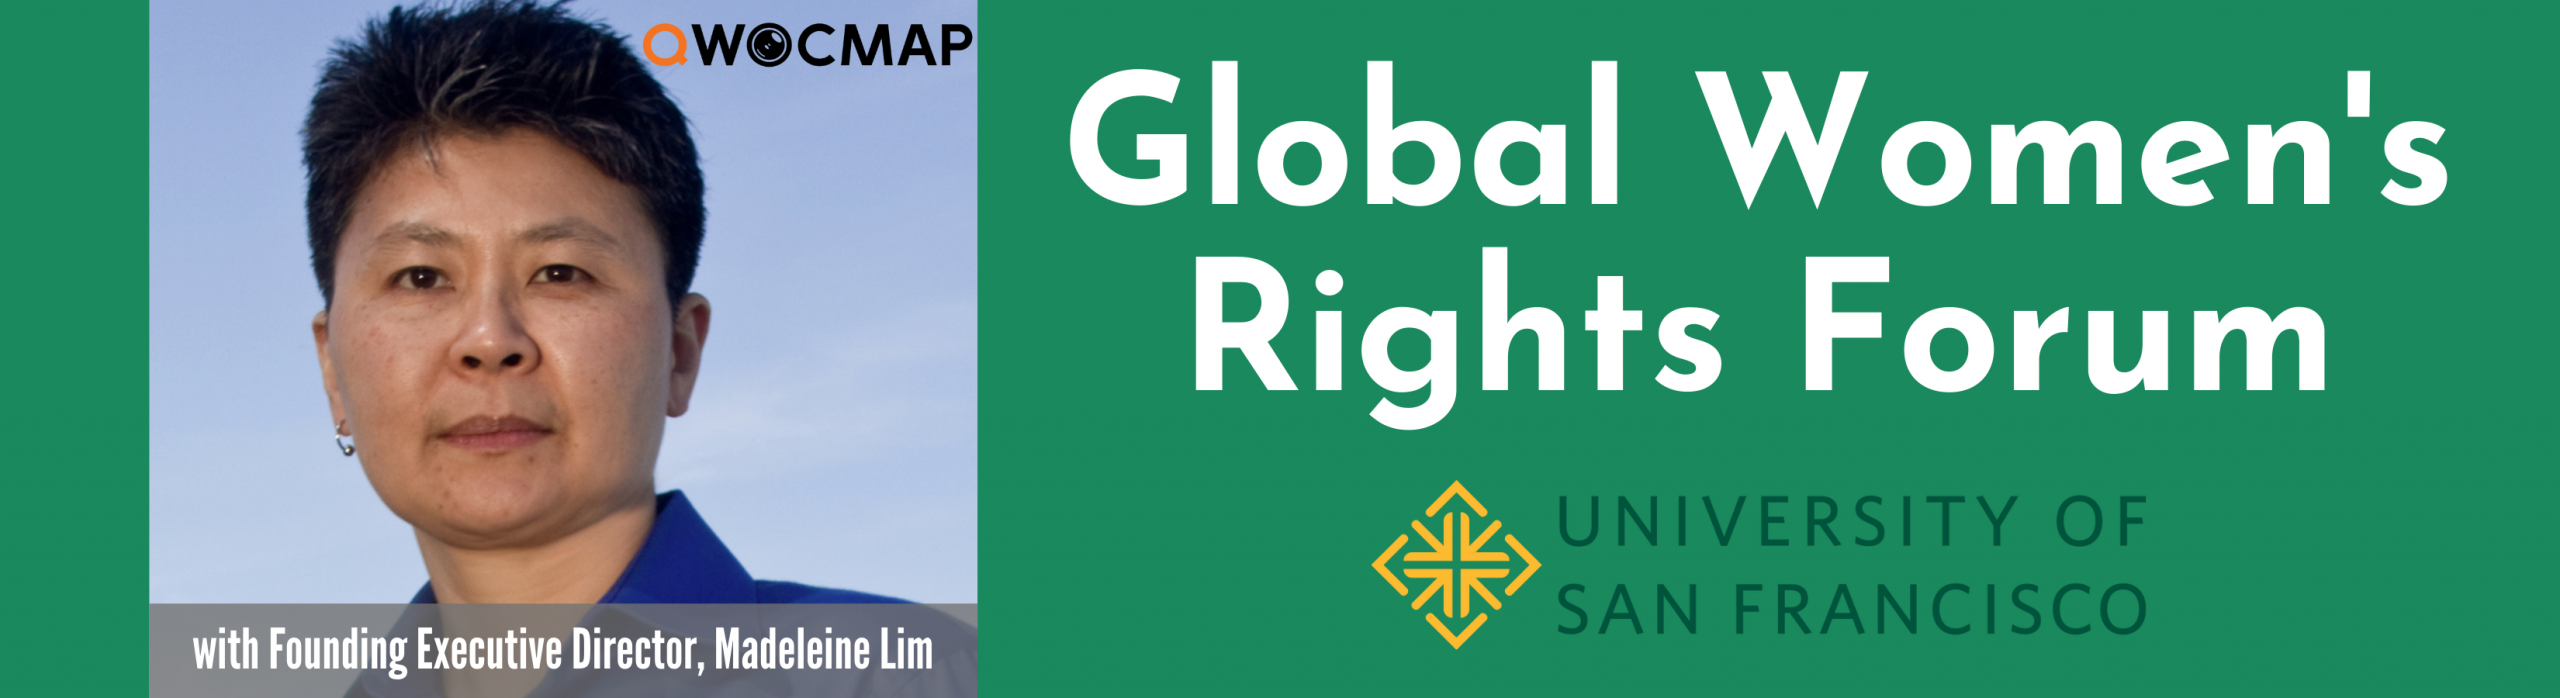 : On a dark green background, white text reads Global Women's Rights Forum, University of San Francisco. On the left is a headshot of an Asian person with light brown skin, short black and gray hair, and brown eyes, wearing a bright blue collared shirt and one earring. On the photo, the QWOCMAP logo is in the top right corner and the caption, which is white text on a gray transparent background, reads With Founding Executive Director, Madeleine Lim.